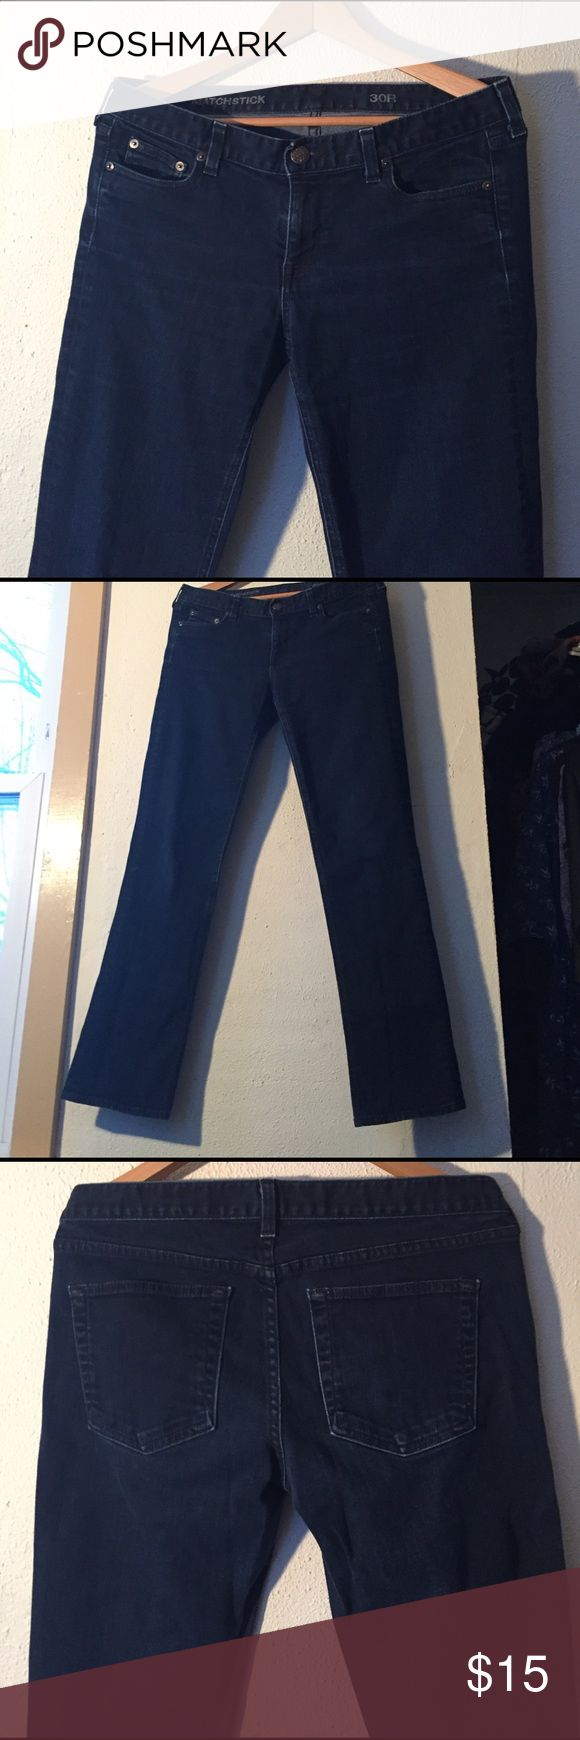 J Crew dark 5-pocket indigo matchstick jeans, 30r These J Crew jeans look like they were never worn!   Beautiful, soft denim, super flattering, and in excellent shape! J. Crew Jeans Straight Leg